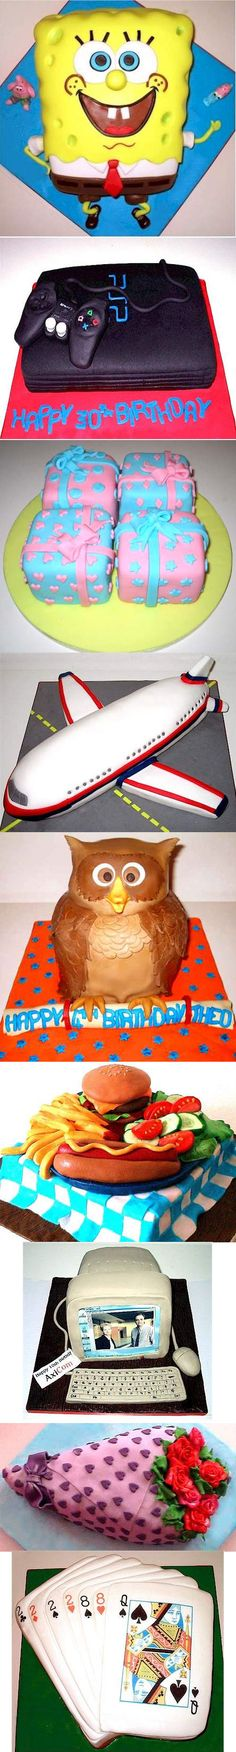 Funny Picture - Funny Cakes - Funny Birthday Cakes